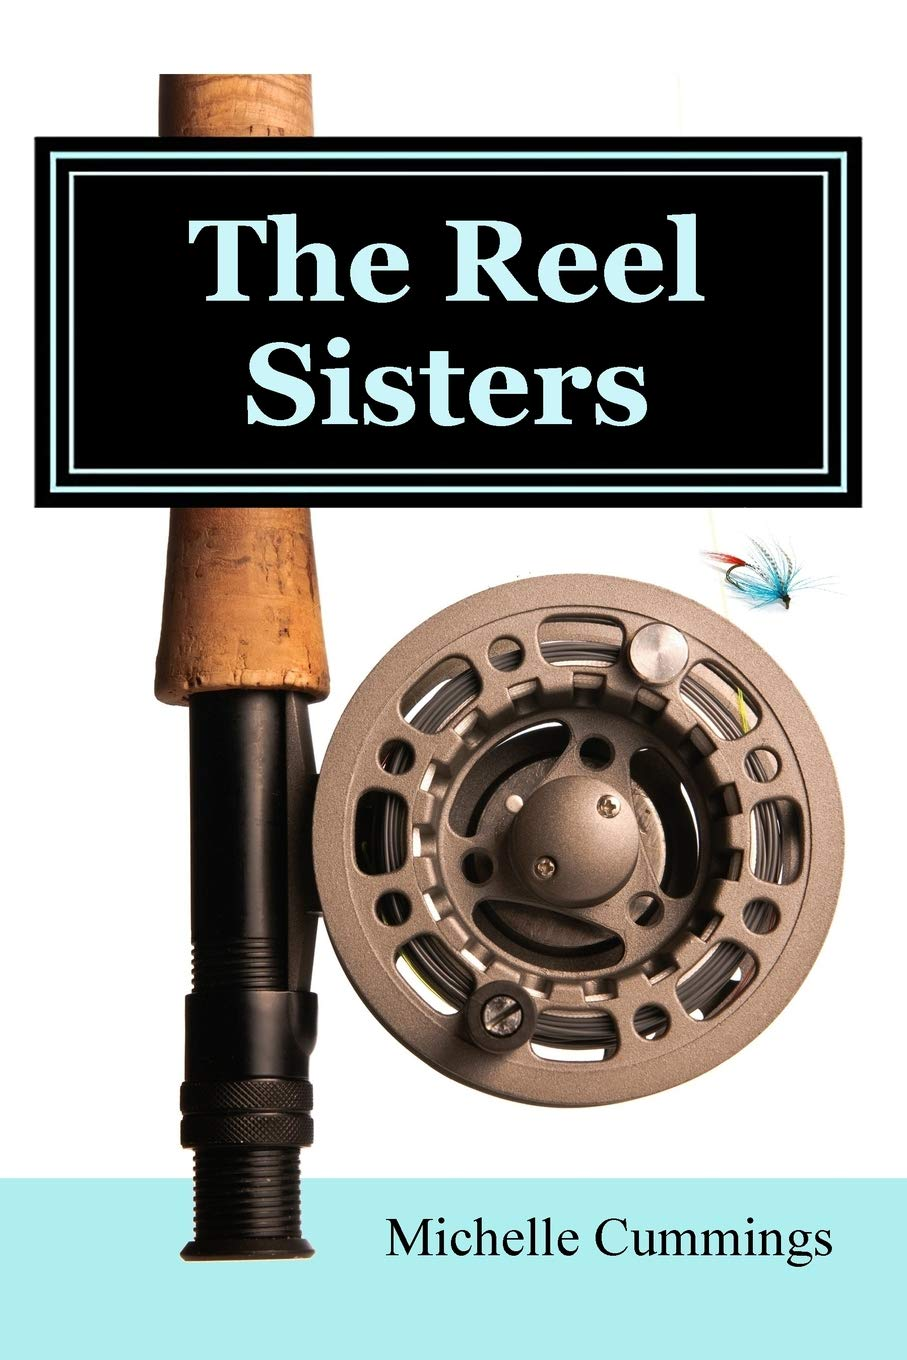 reel sisters michelle cummings tenkara hansha episode 3